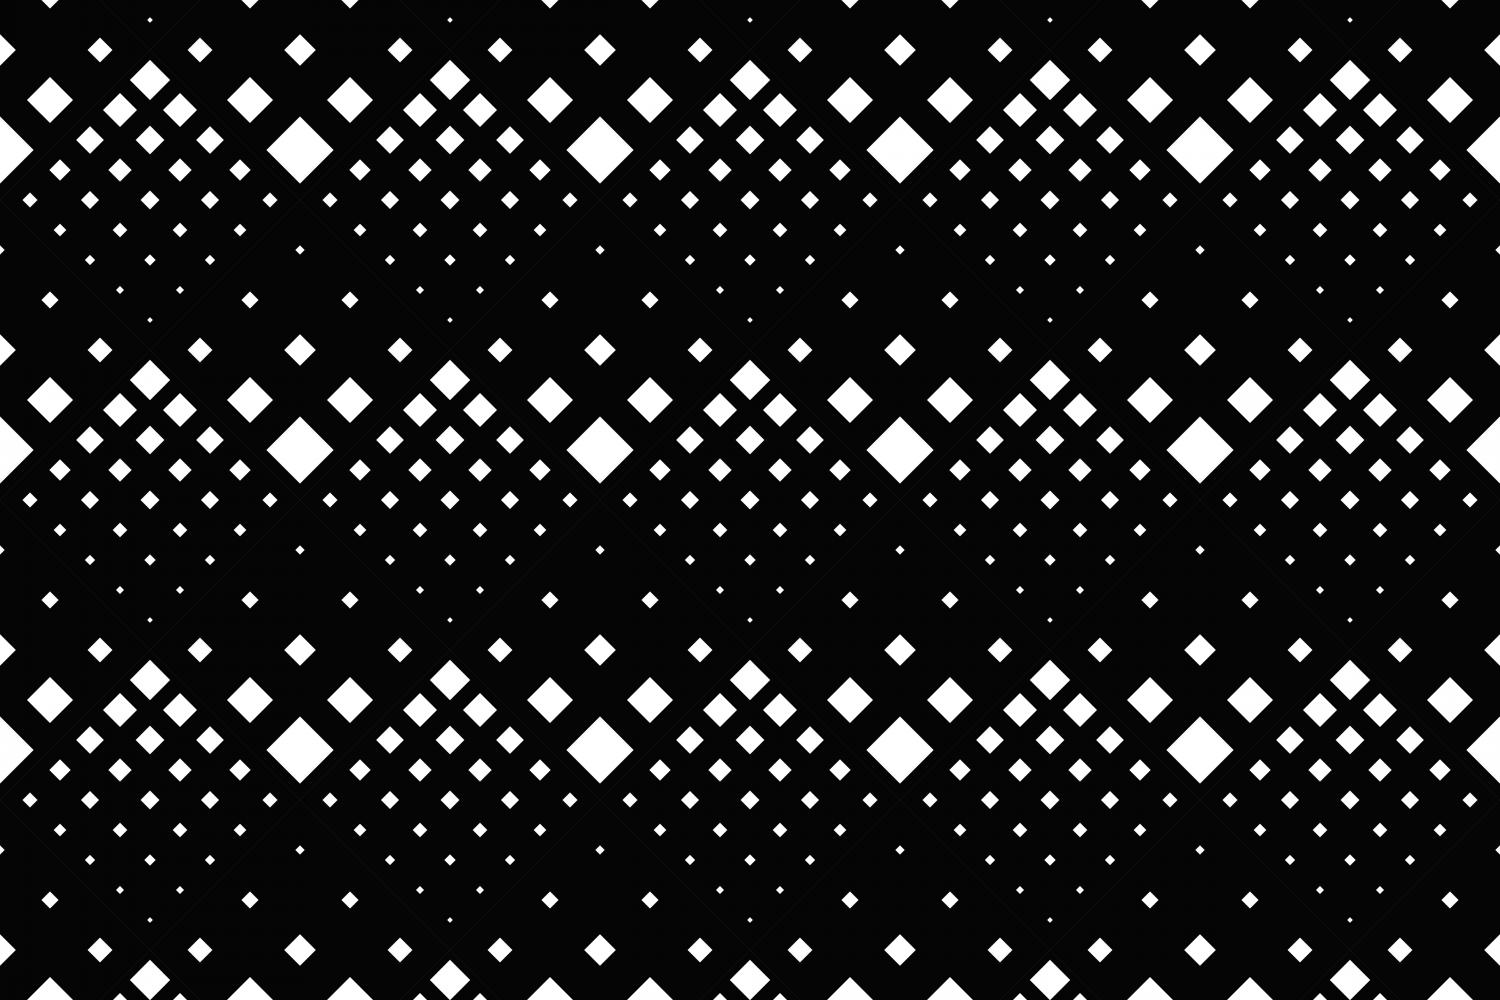 24 Seamless Square Patterns example image 11